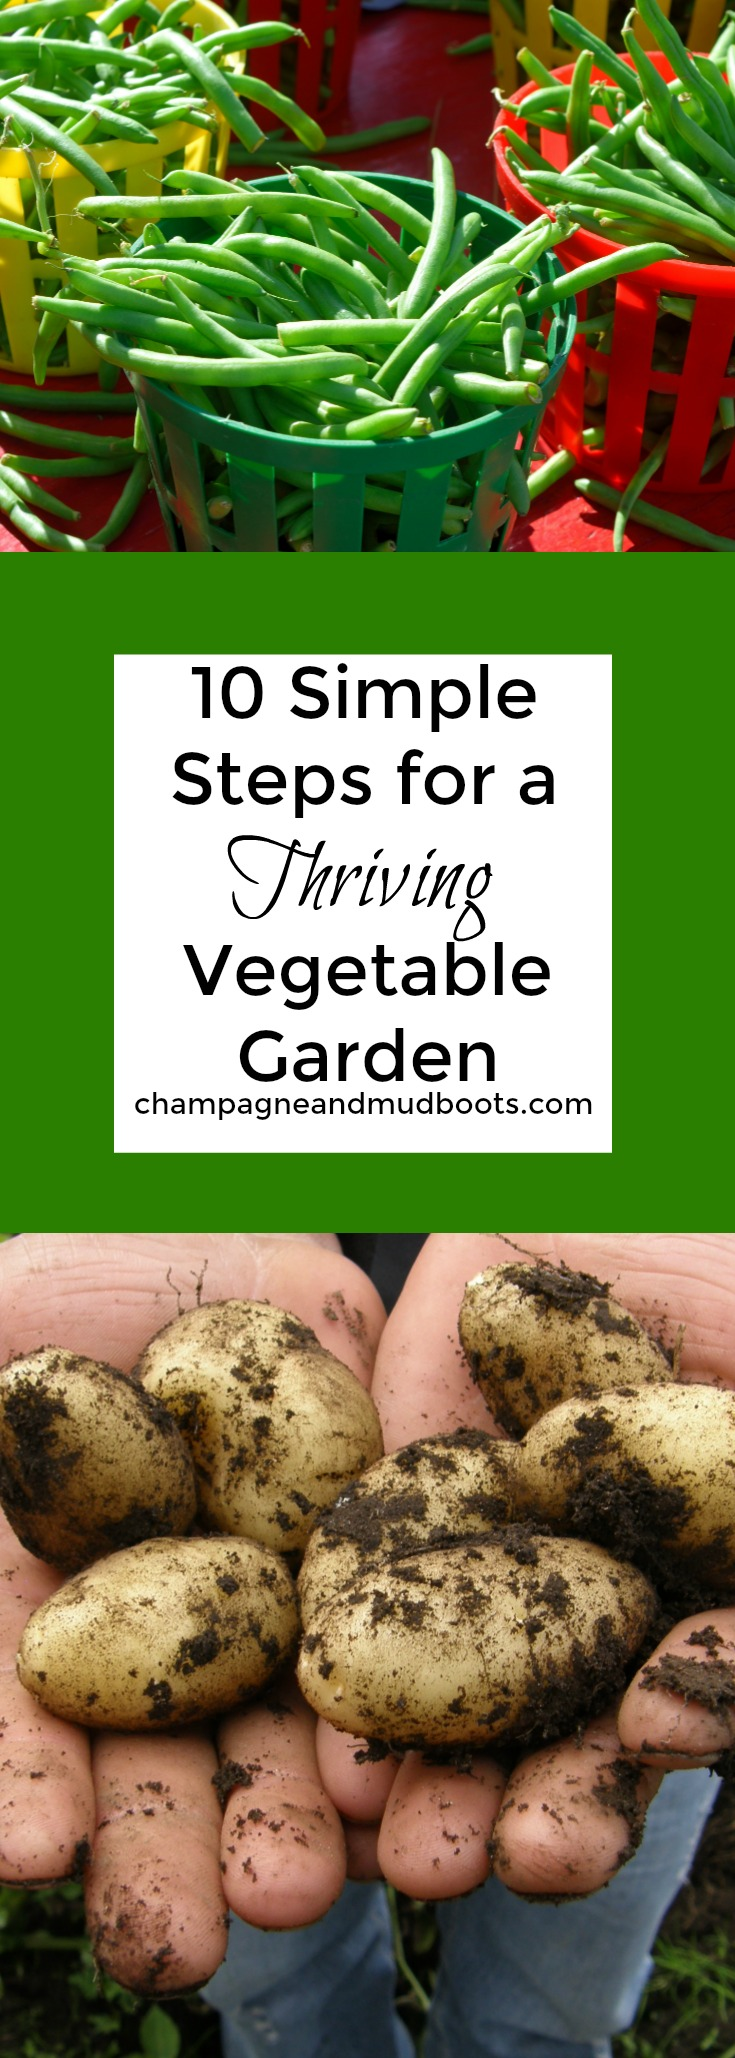 This article gives you 10 simple steps for creating and planning a productive vegetable garden with increased yields and less stress for you.